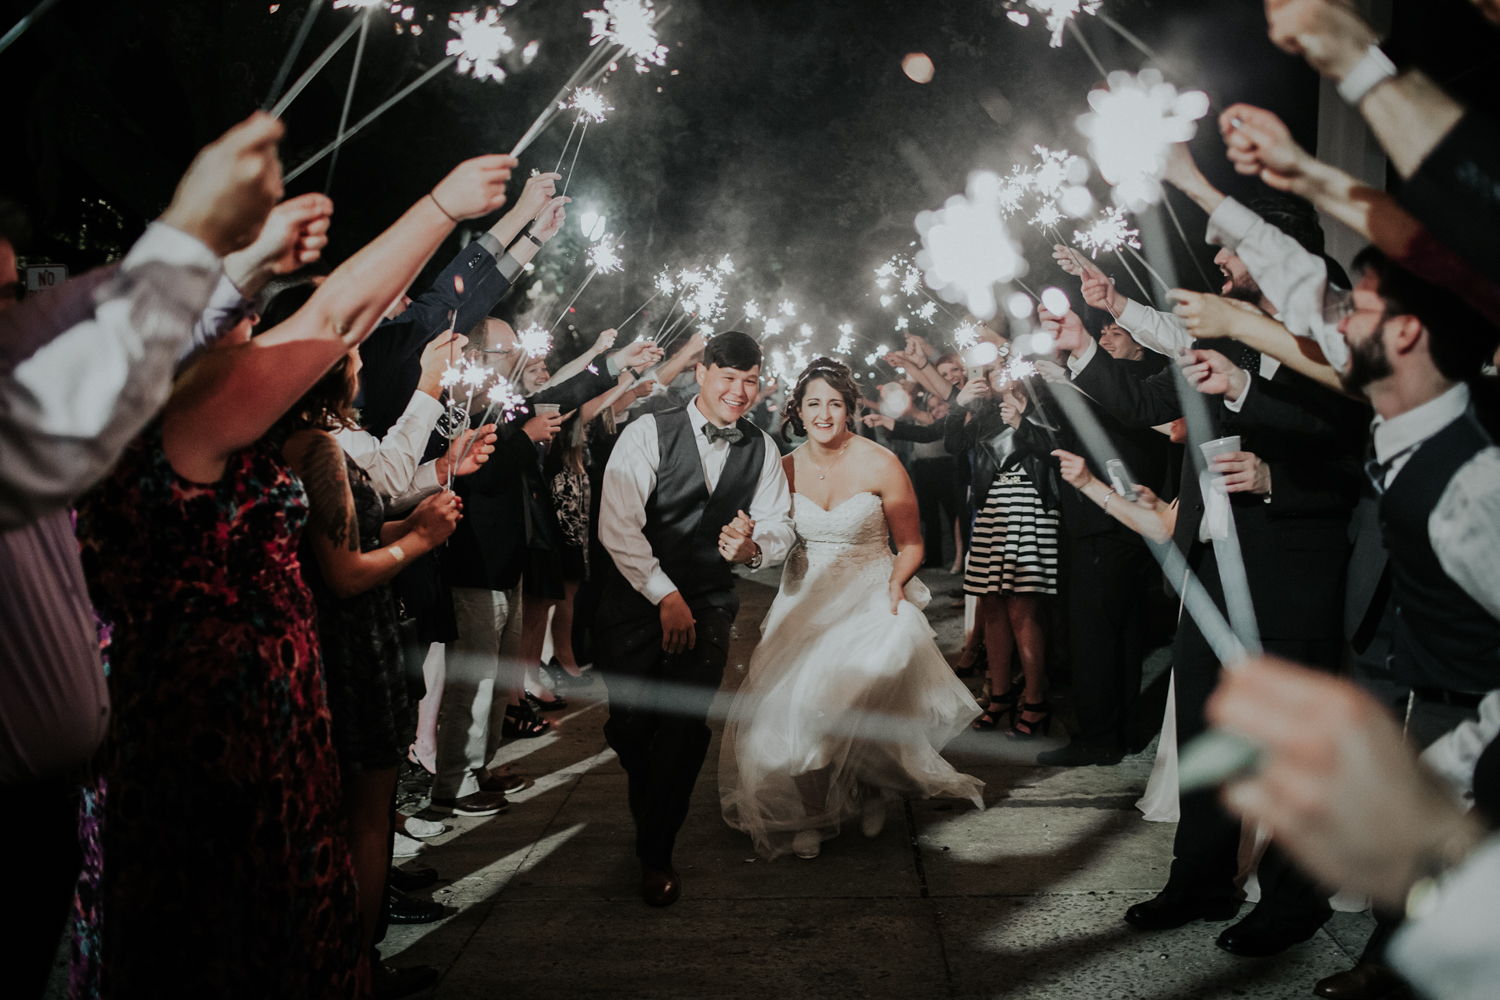 casey-brodley-sparkler-exit-michigan-wedding-photographers.jpg